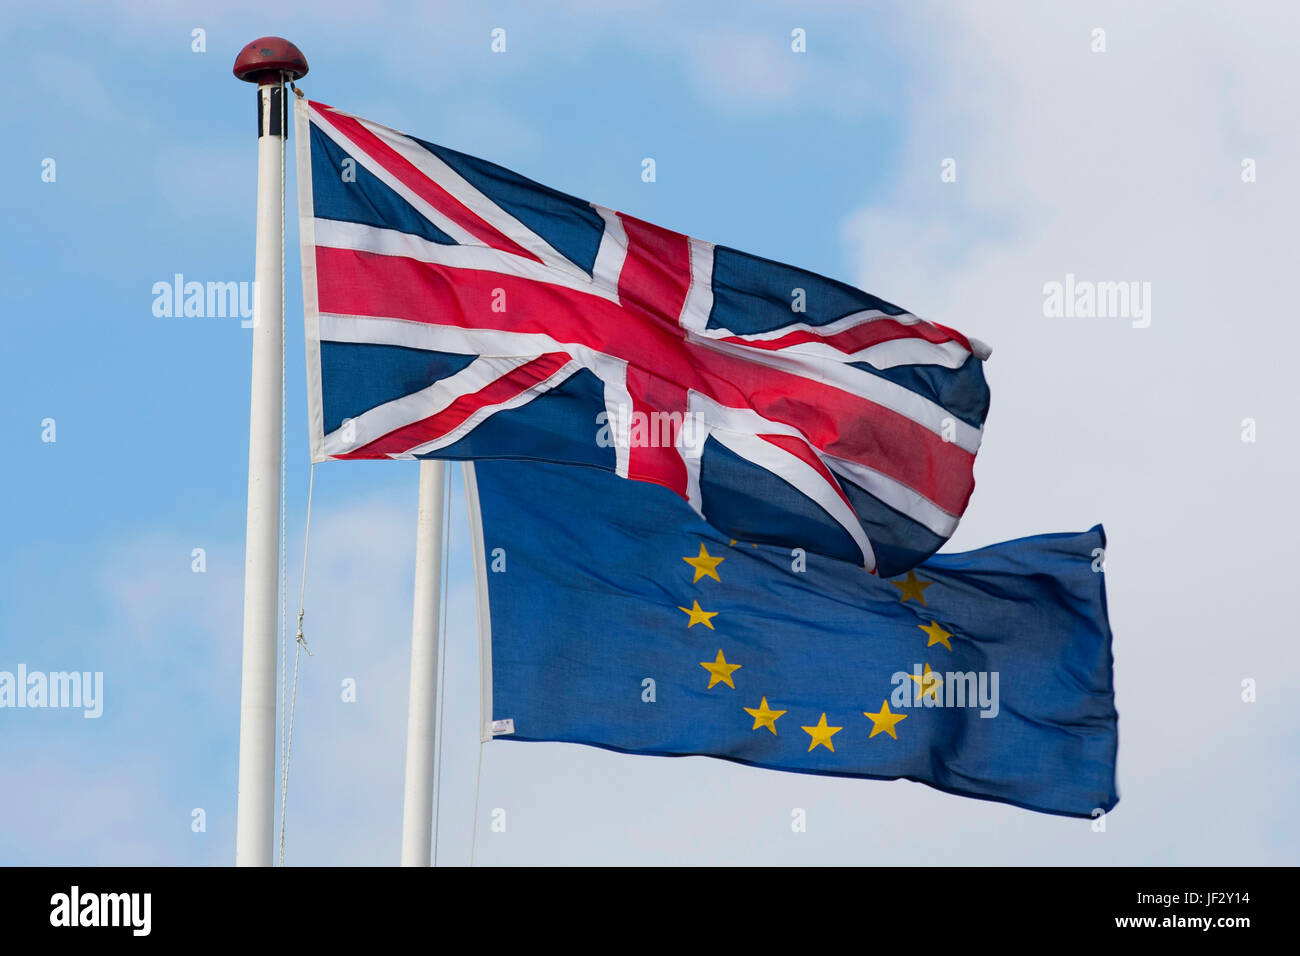 European Union and British Union Jack flags blow in the wind. The UK voted to leave the EU in a referendum. - Stock Image